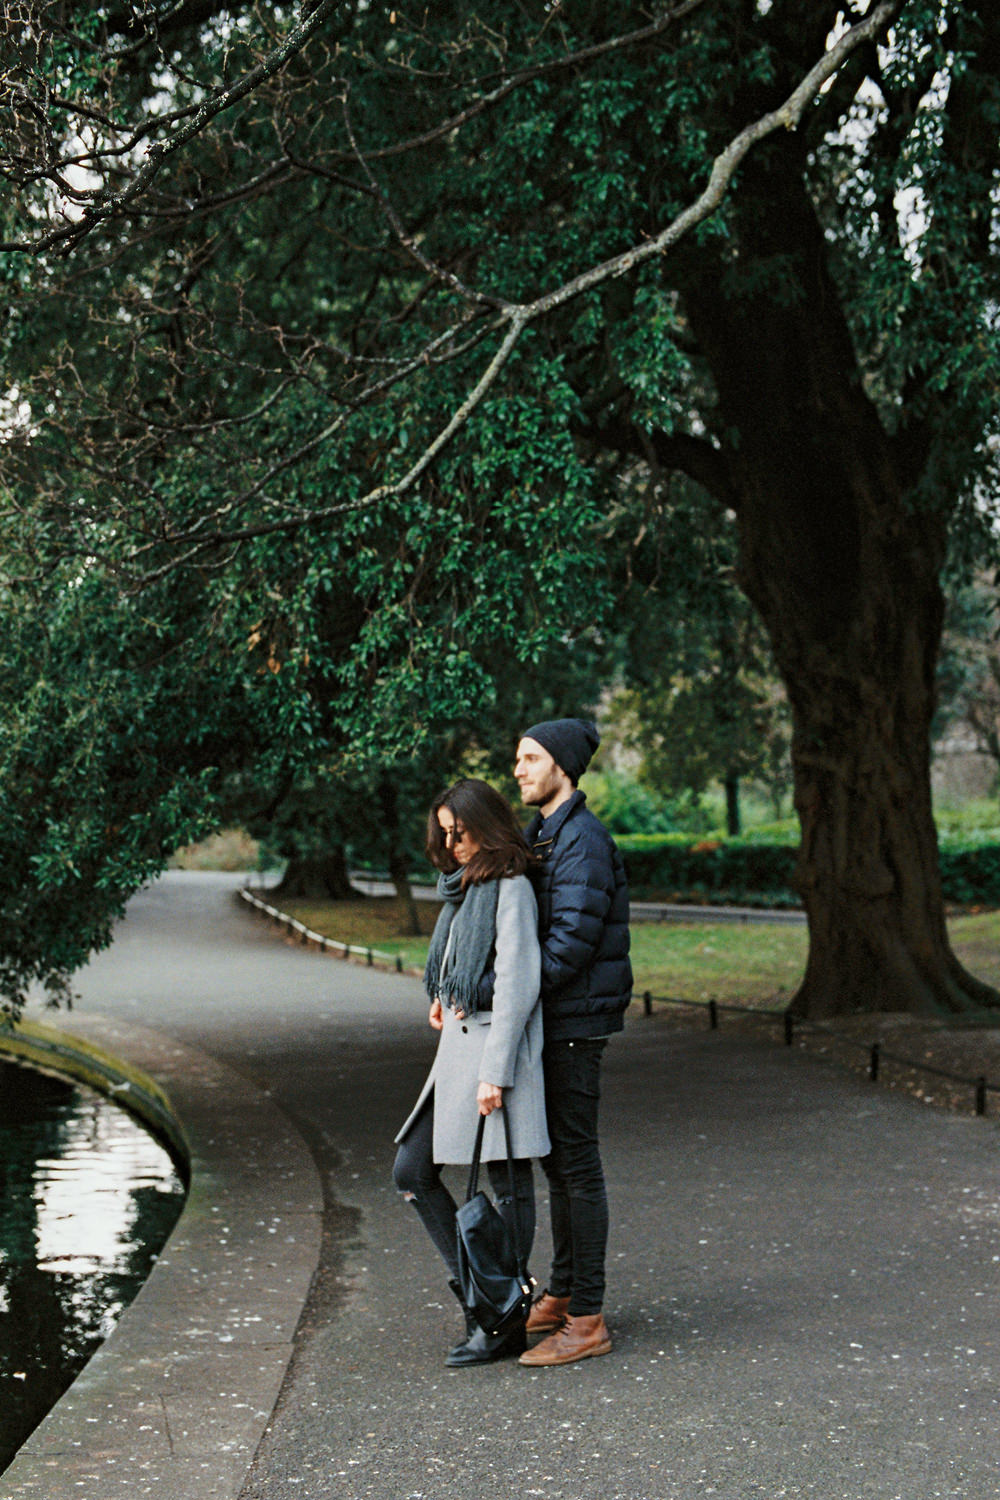 lifestyle engagement photography in Dublin, Ireland